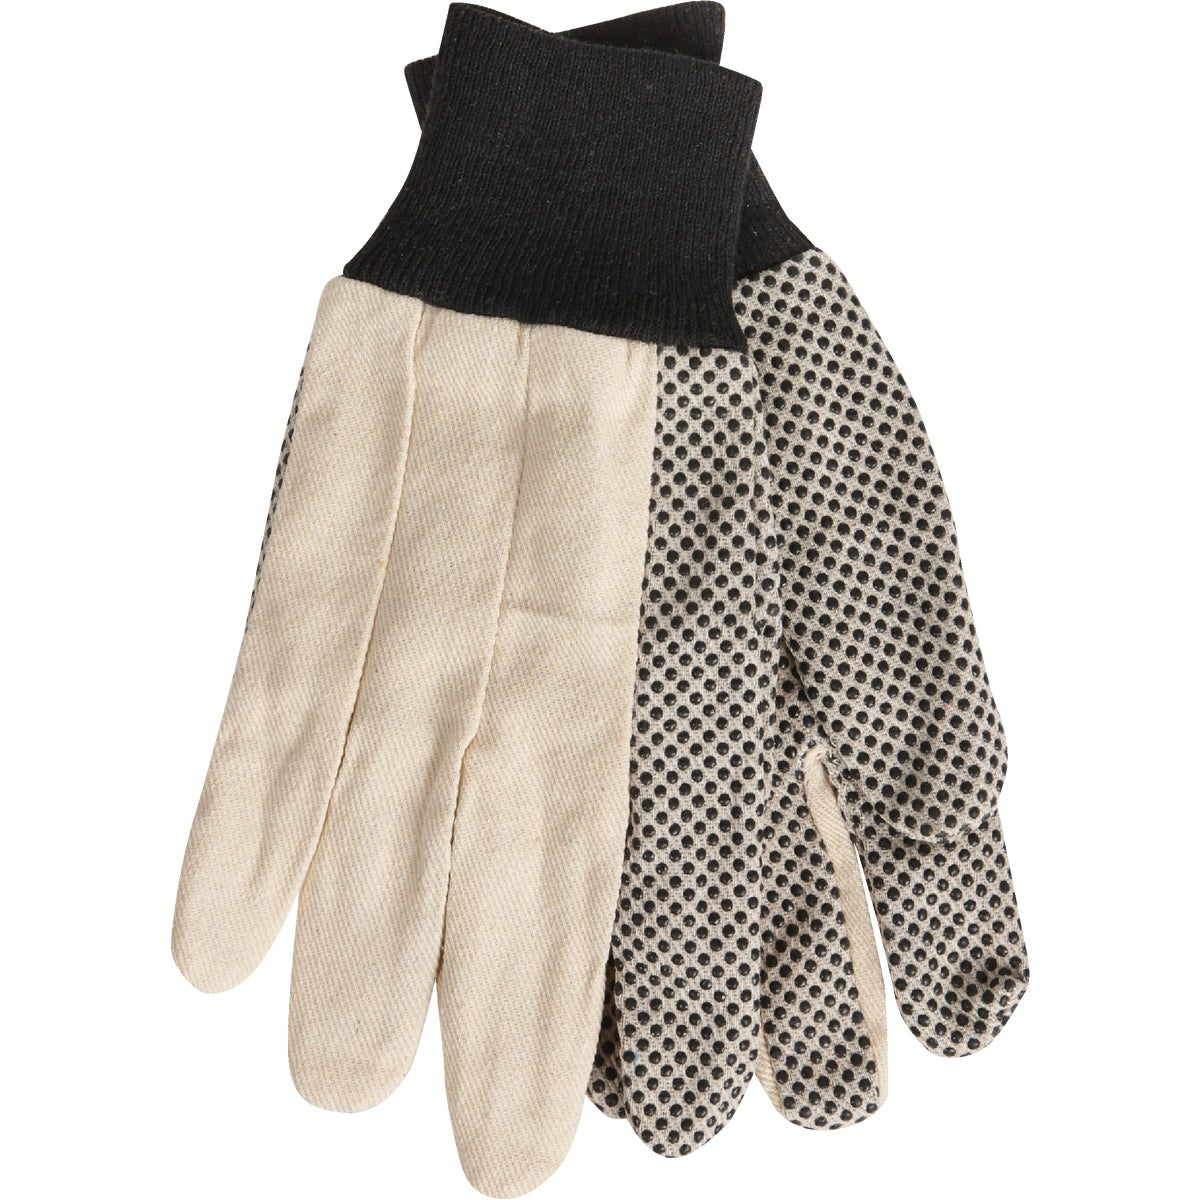 CANVAS DOT GLOVE - 708461 by Do it Best